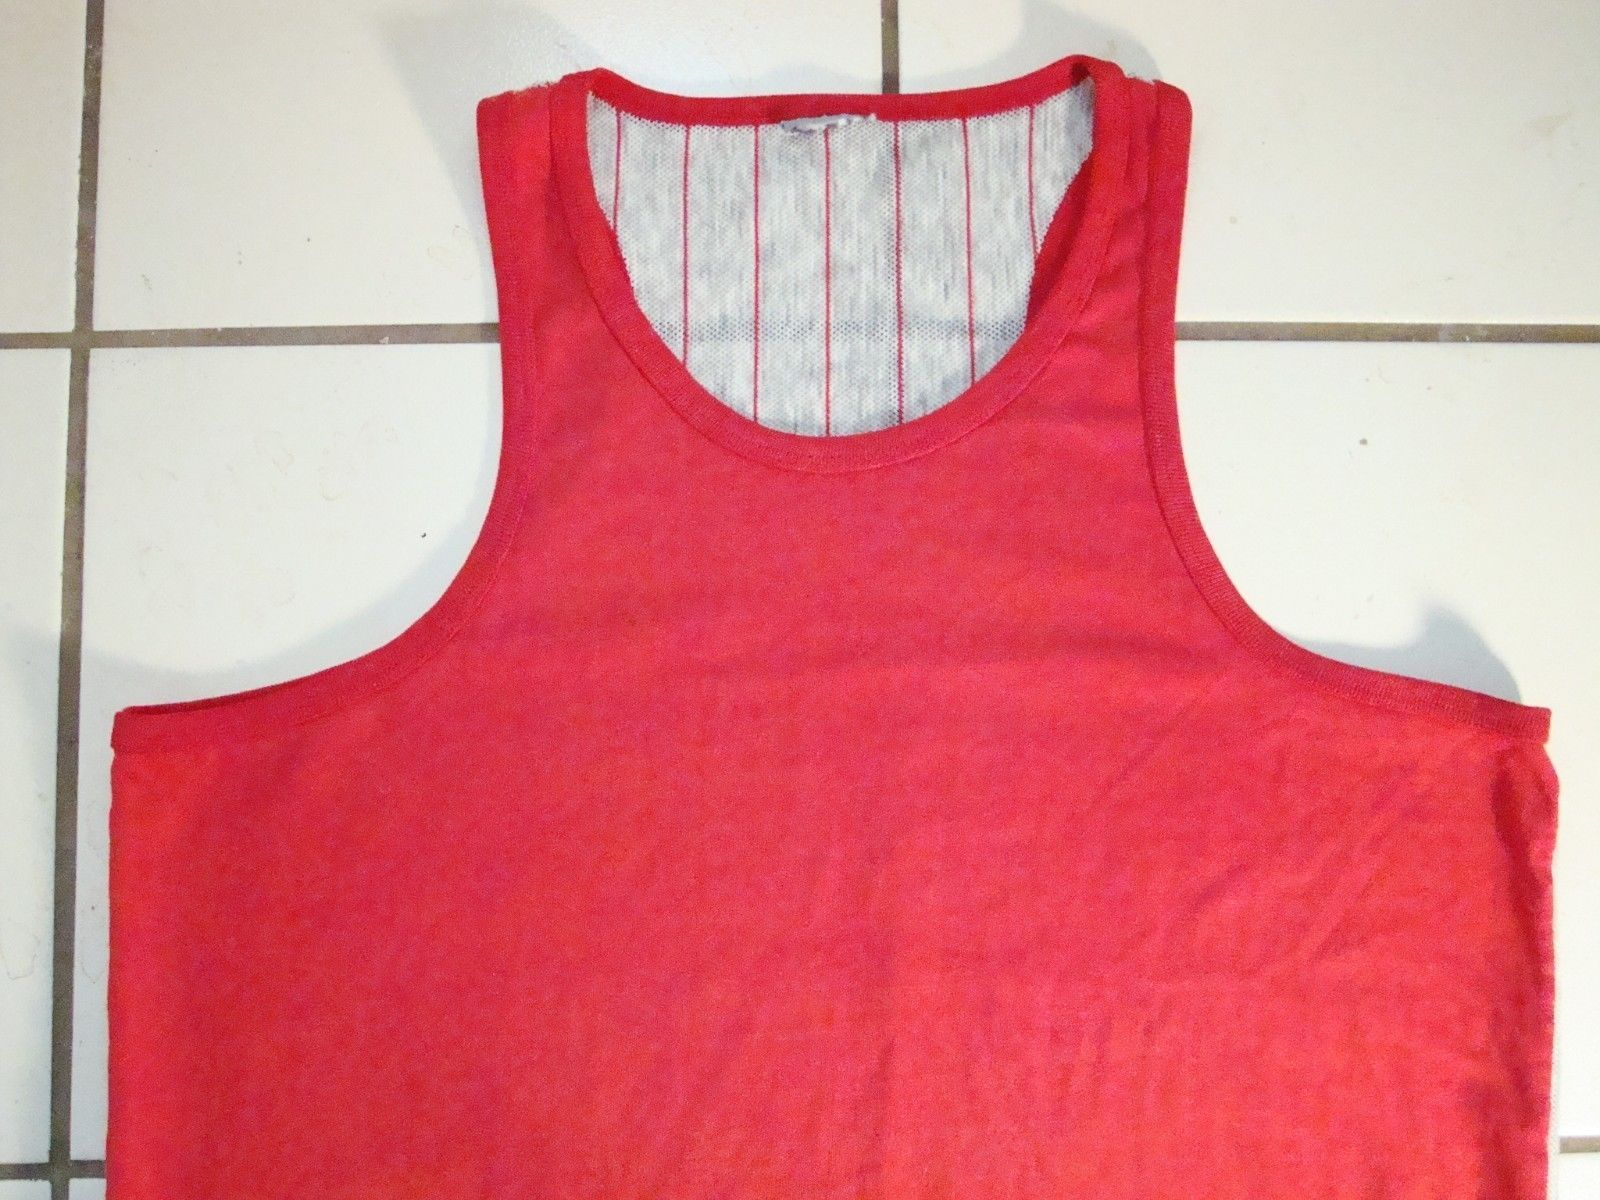 Primary image for Vintage Simple Sports Tank Top Sleeveless Netted Back T Shirt L